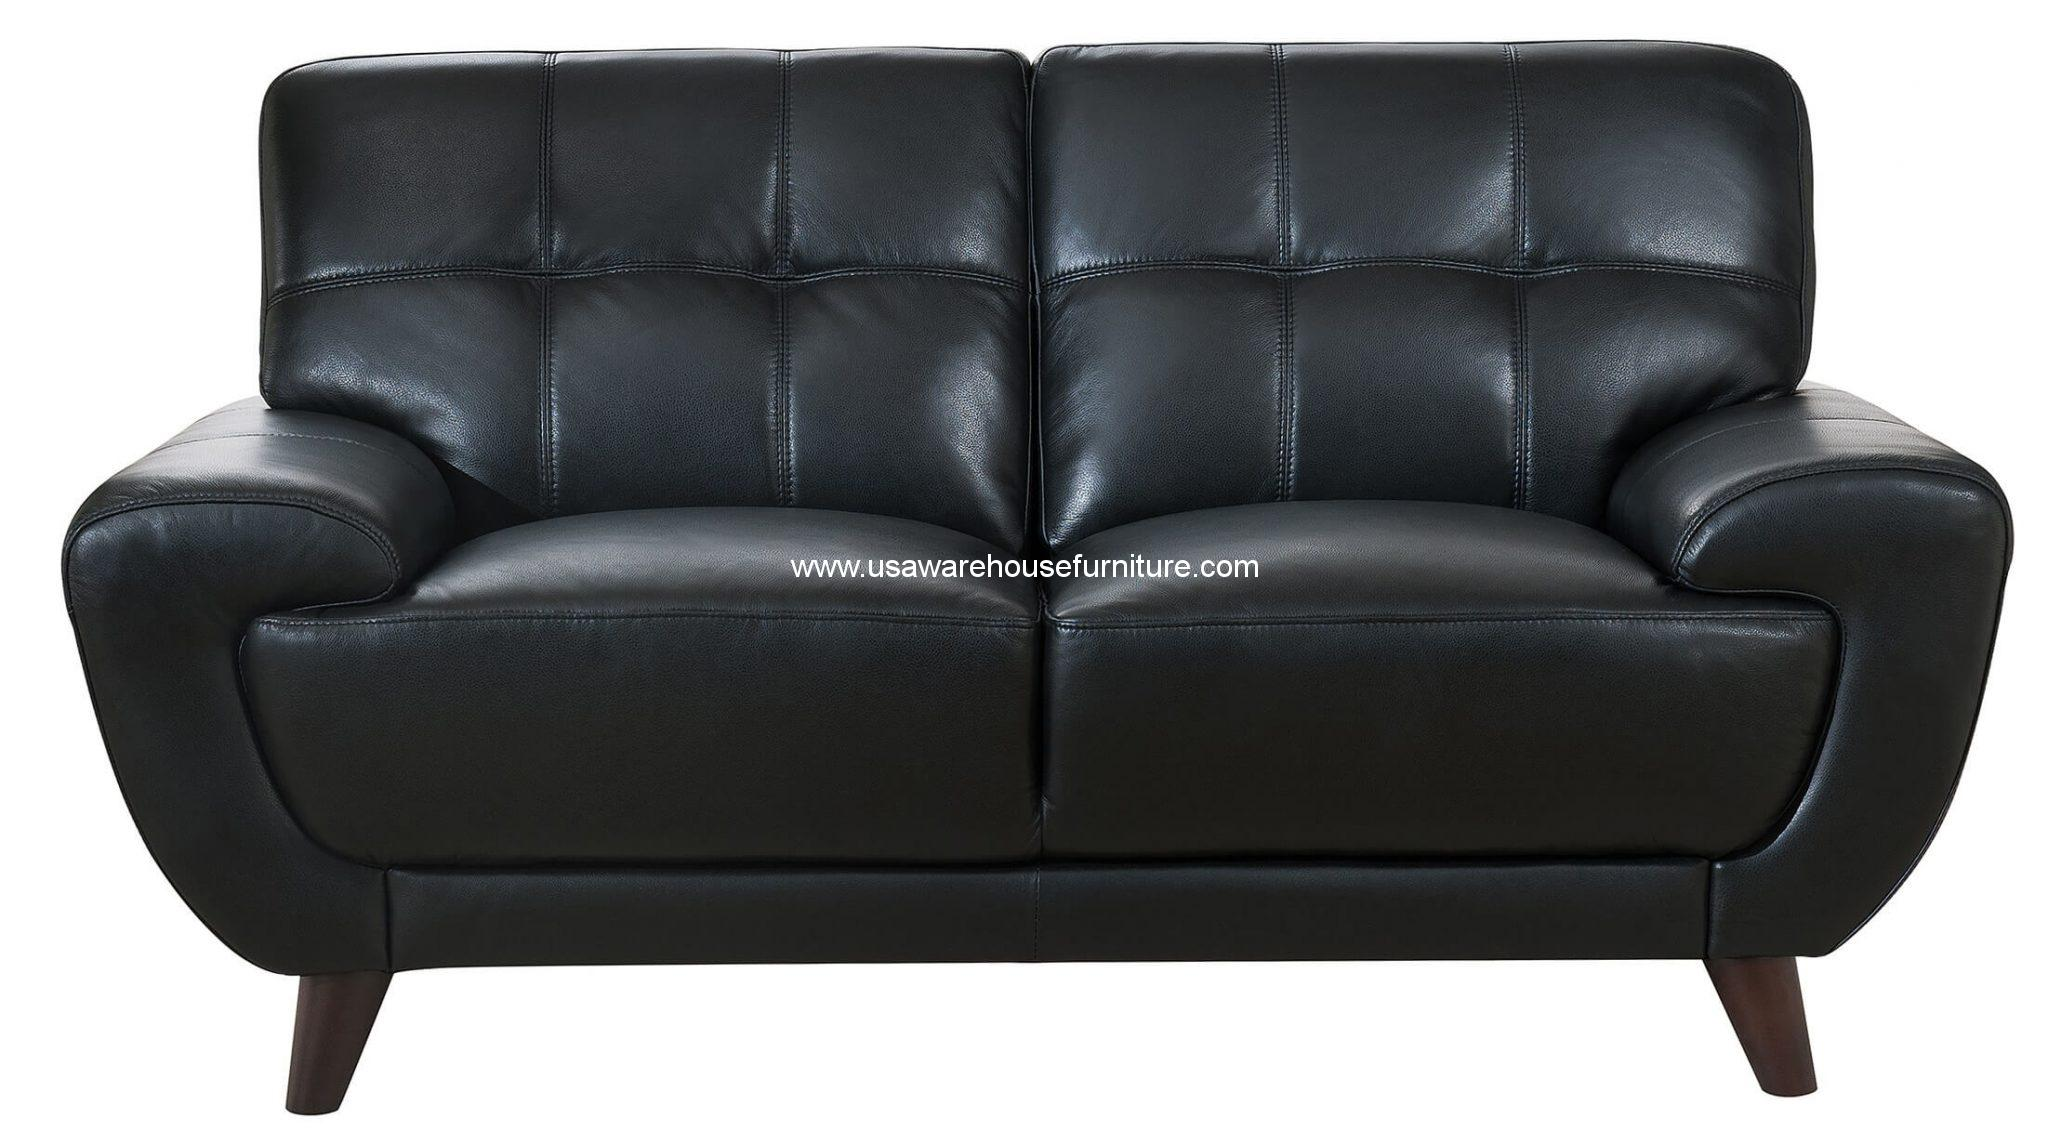 Nicole black full top grain leather loveseat usa warehouse furniture Loveseat black